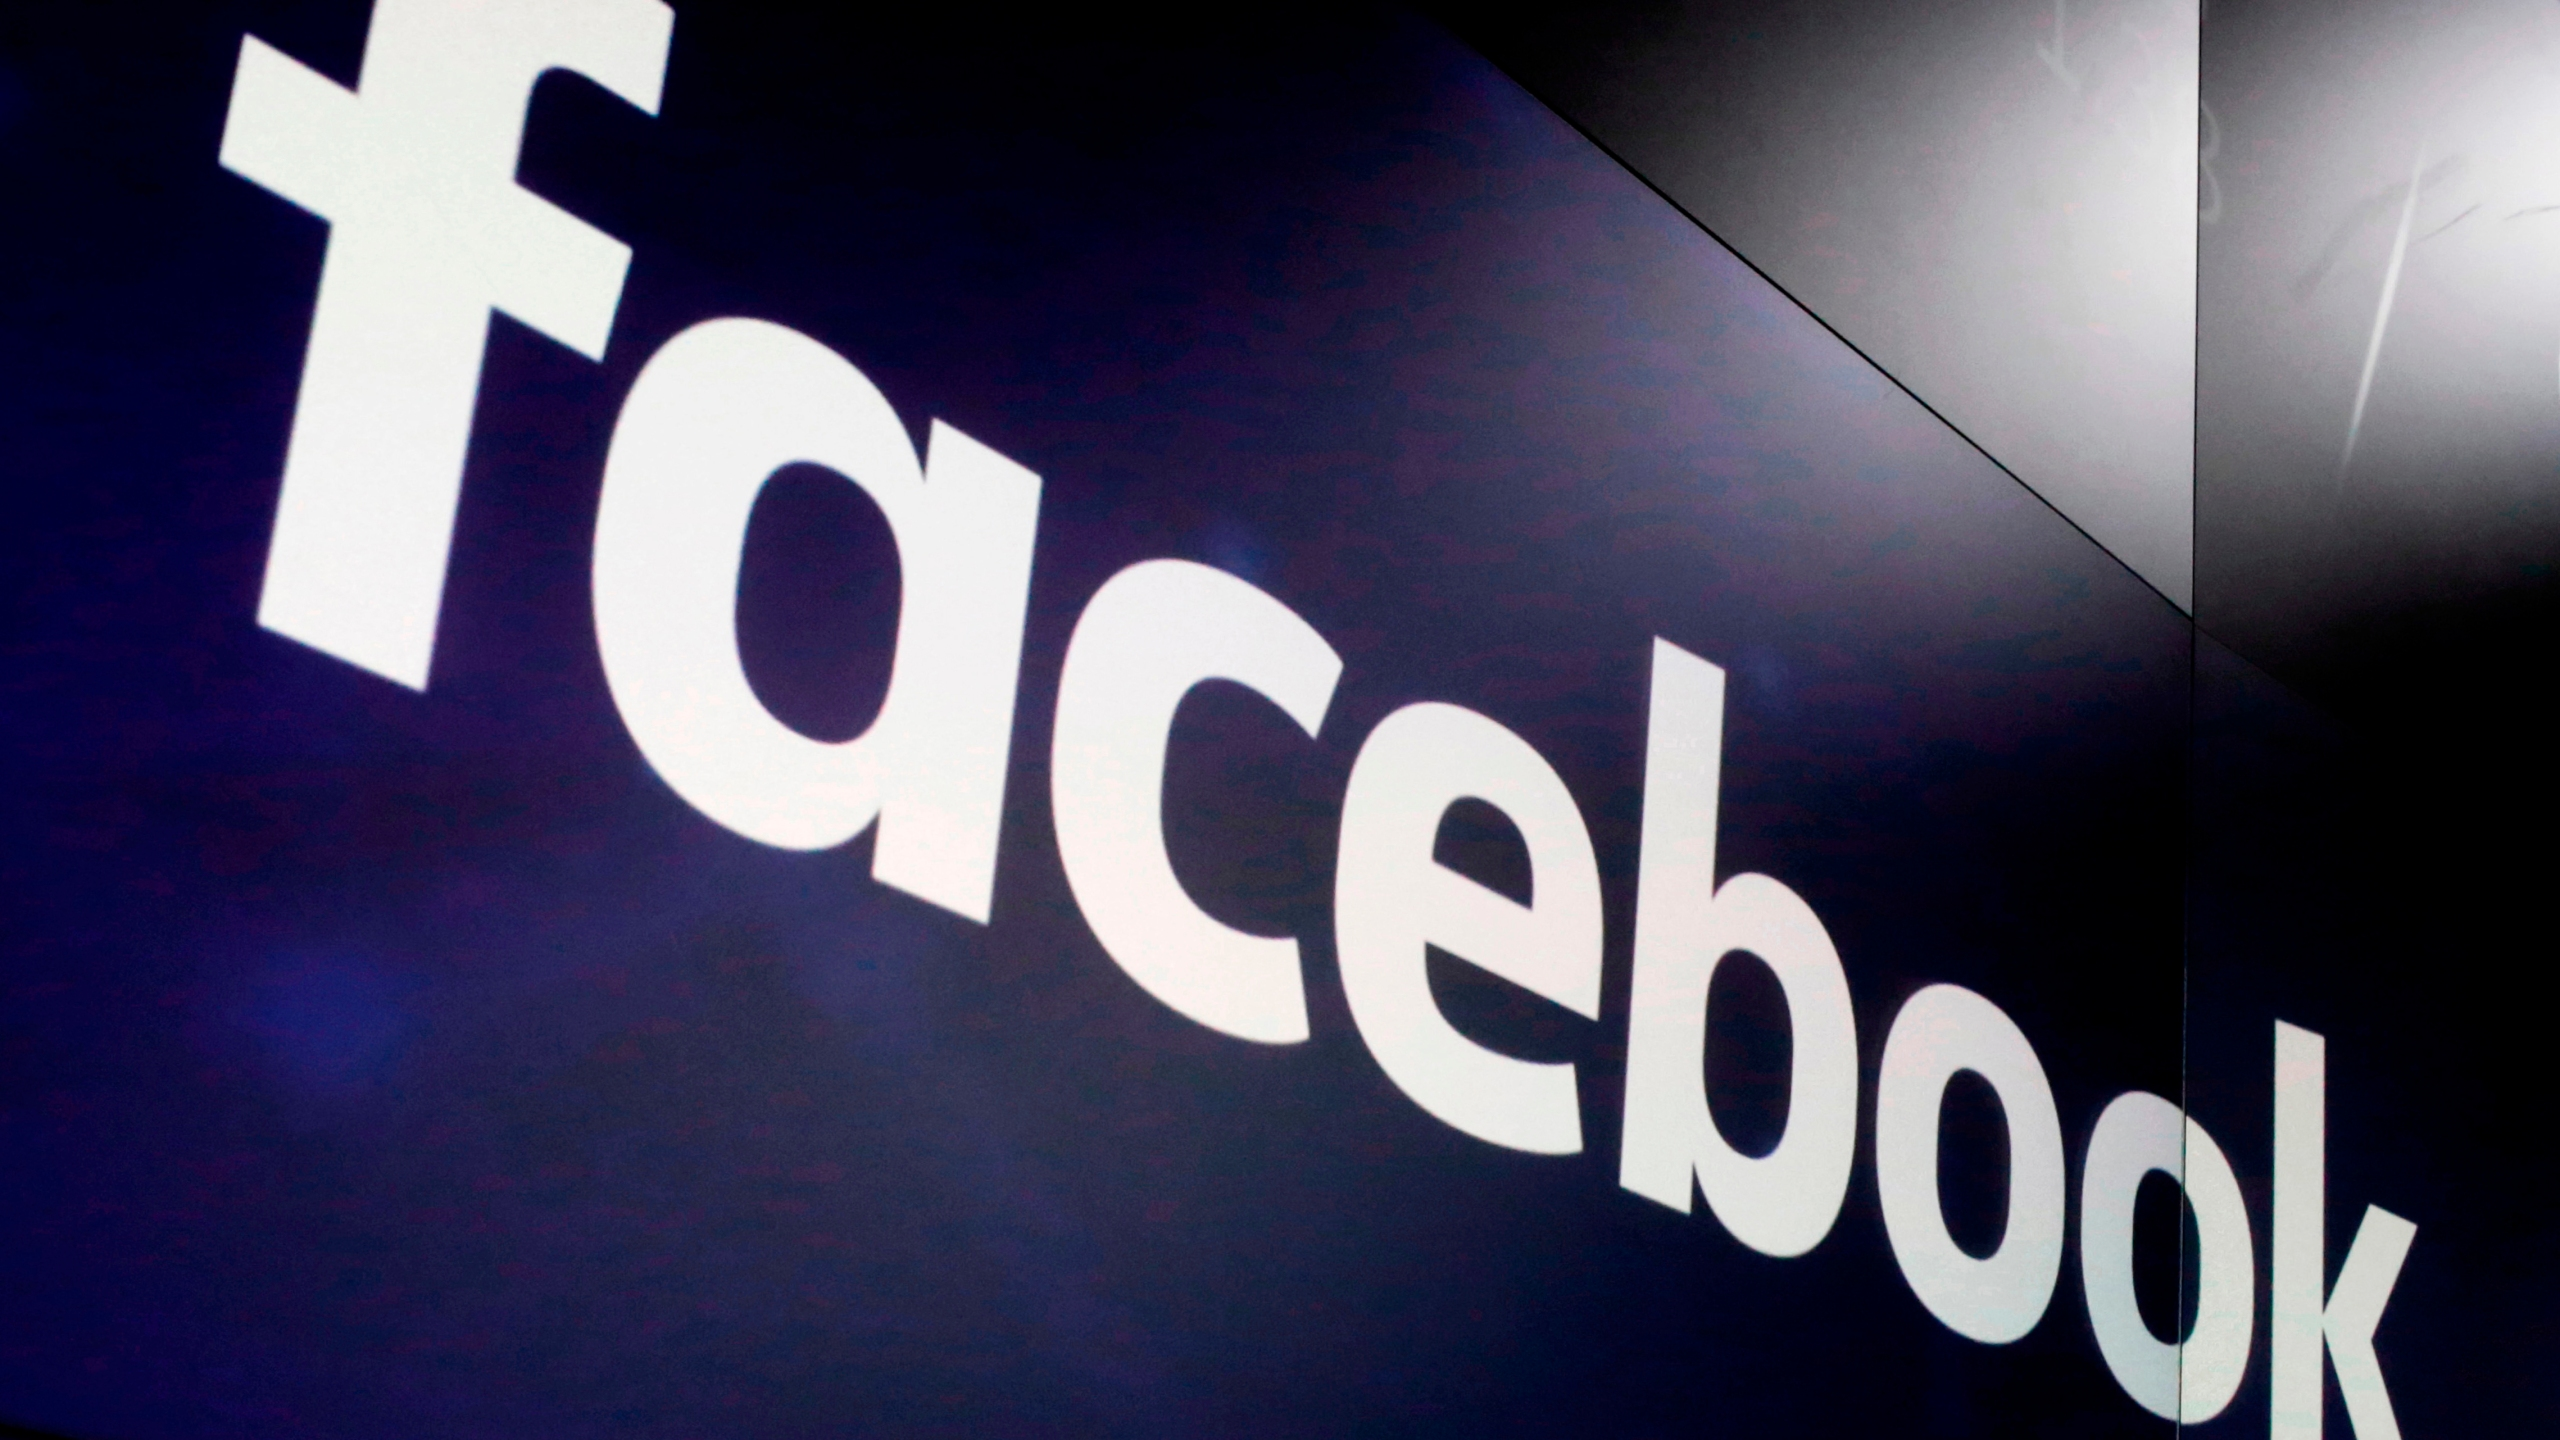 n this March 29, 2018, file photo, the logo for Facebook appears on screens at the Nasdaq MarketSite in New York's Times Square. (AP Photo/Richard Drew, File)